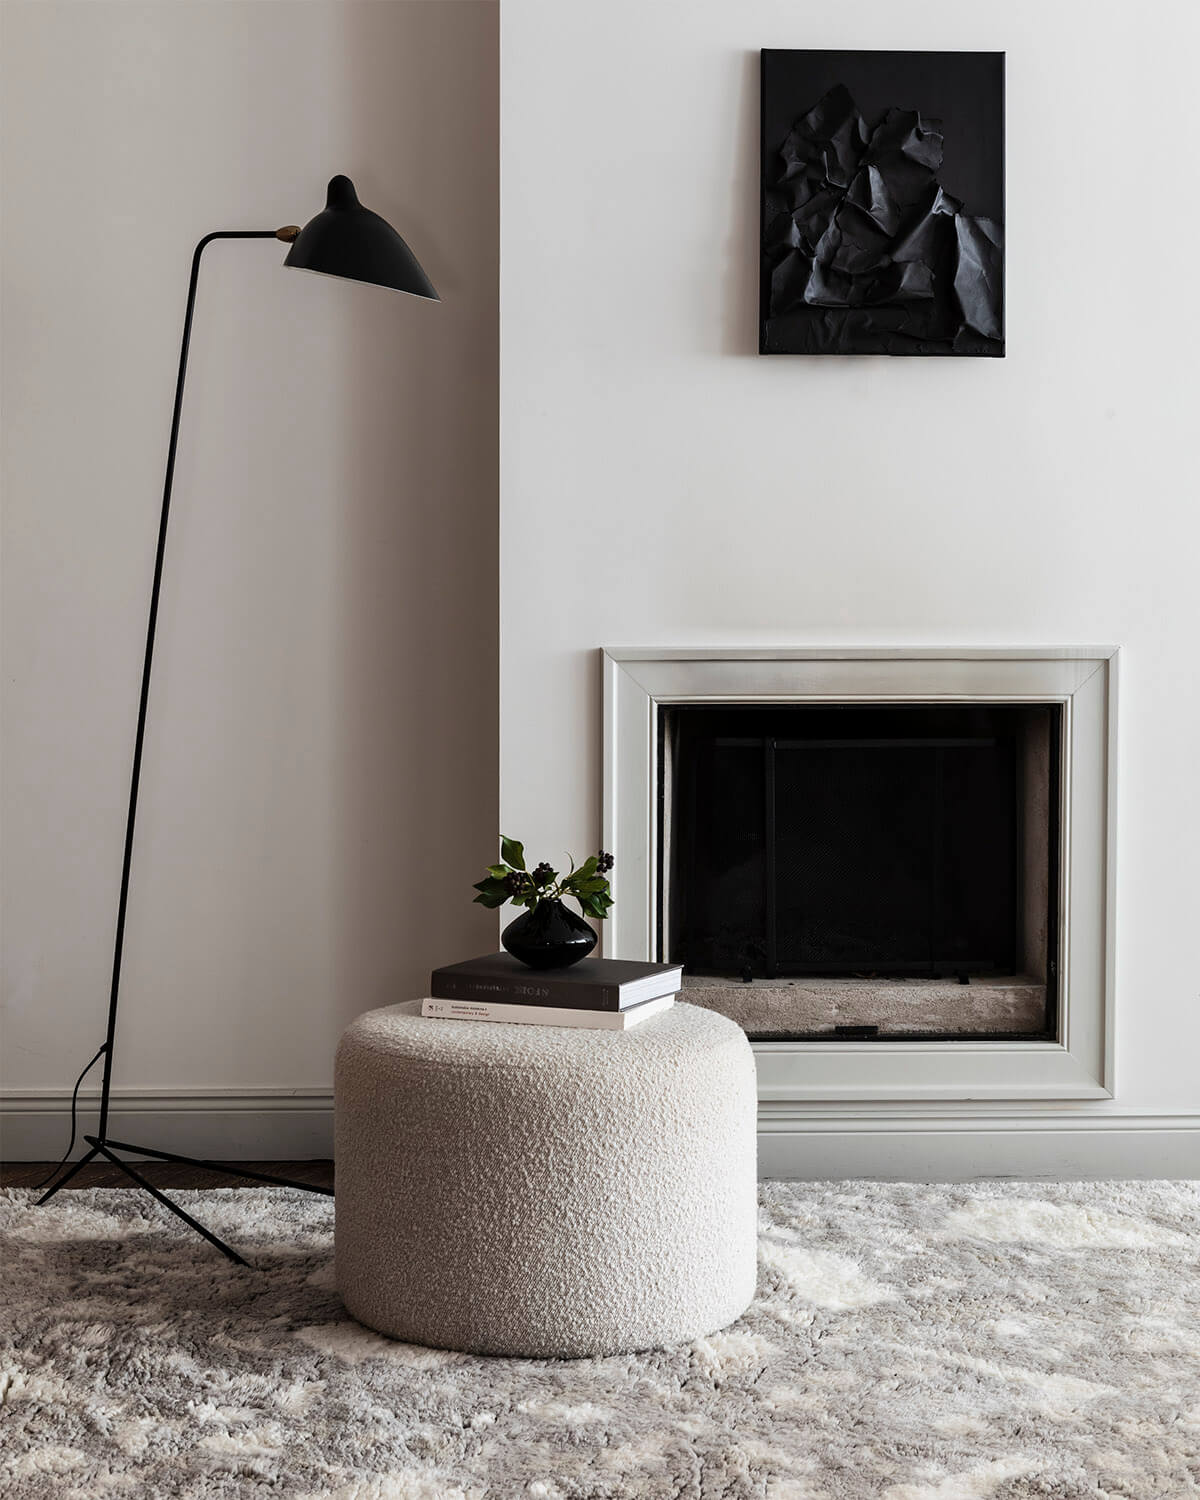 The shaggy rug Archipelago in the color Oatmeal displayed in a light living room setting.